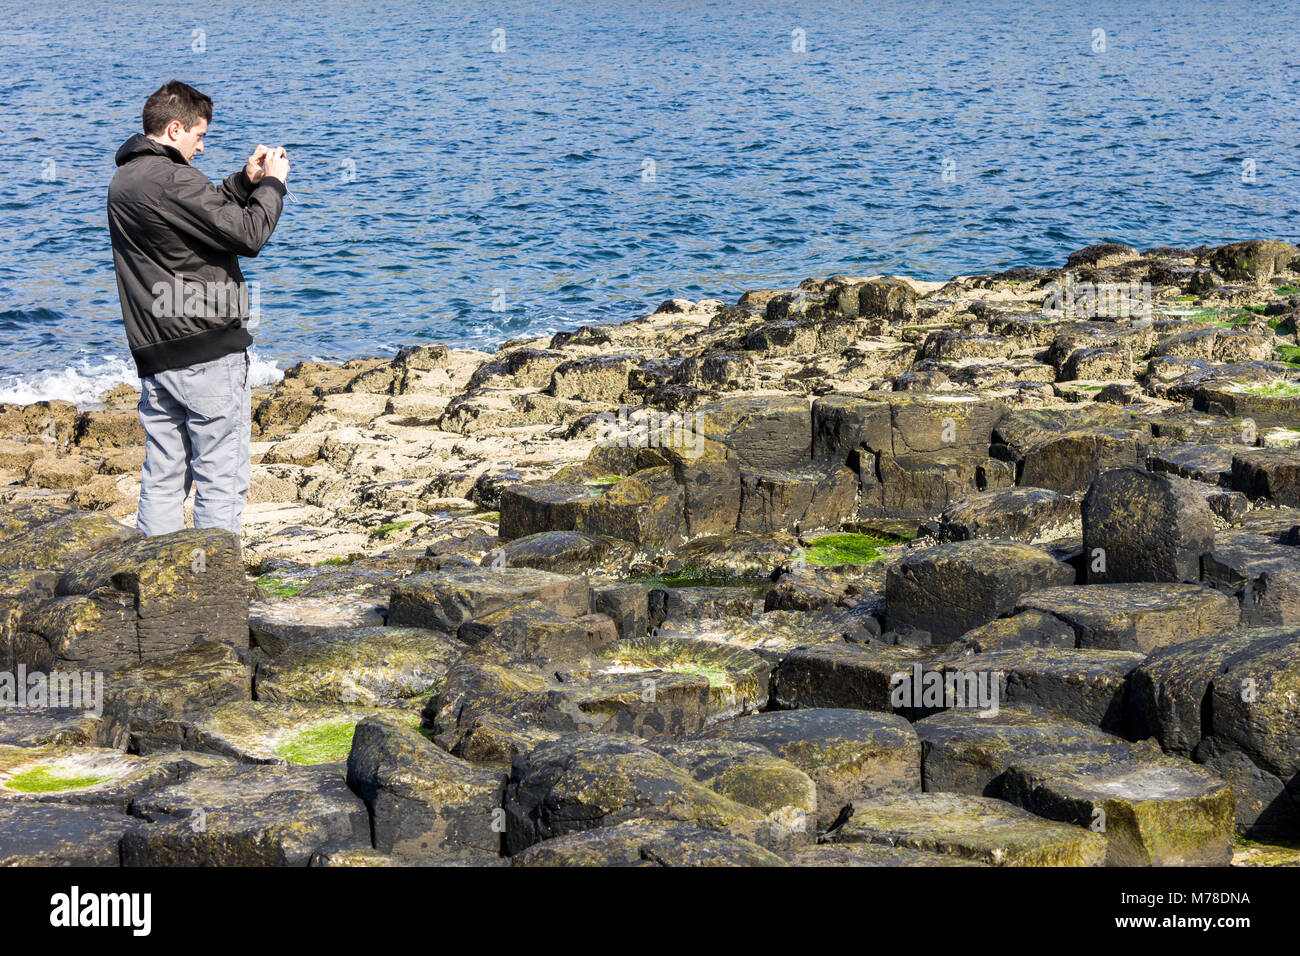 The Giant's Causeway, basalt columns from an ancient volcanic eruption in County Antrim on the north coast of - Stock Image